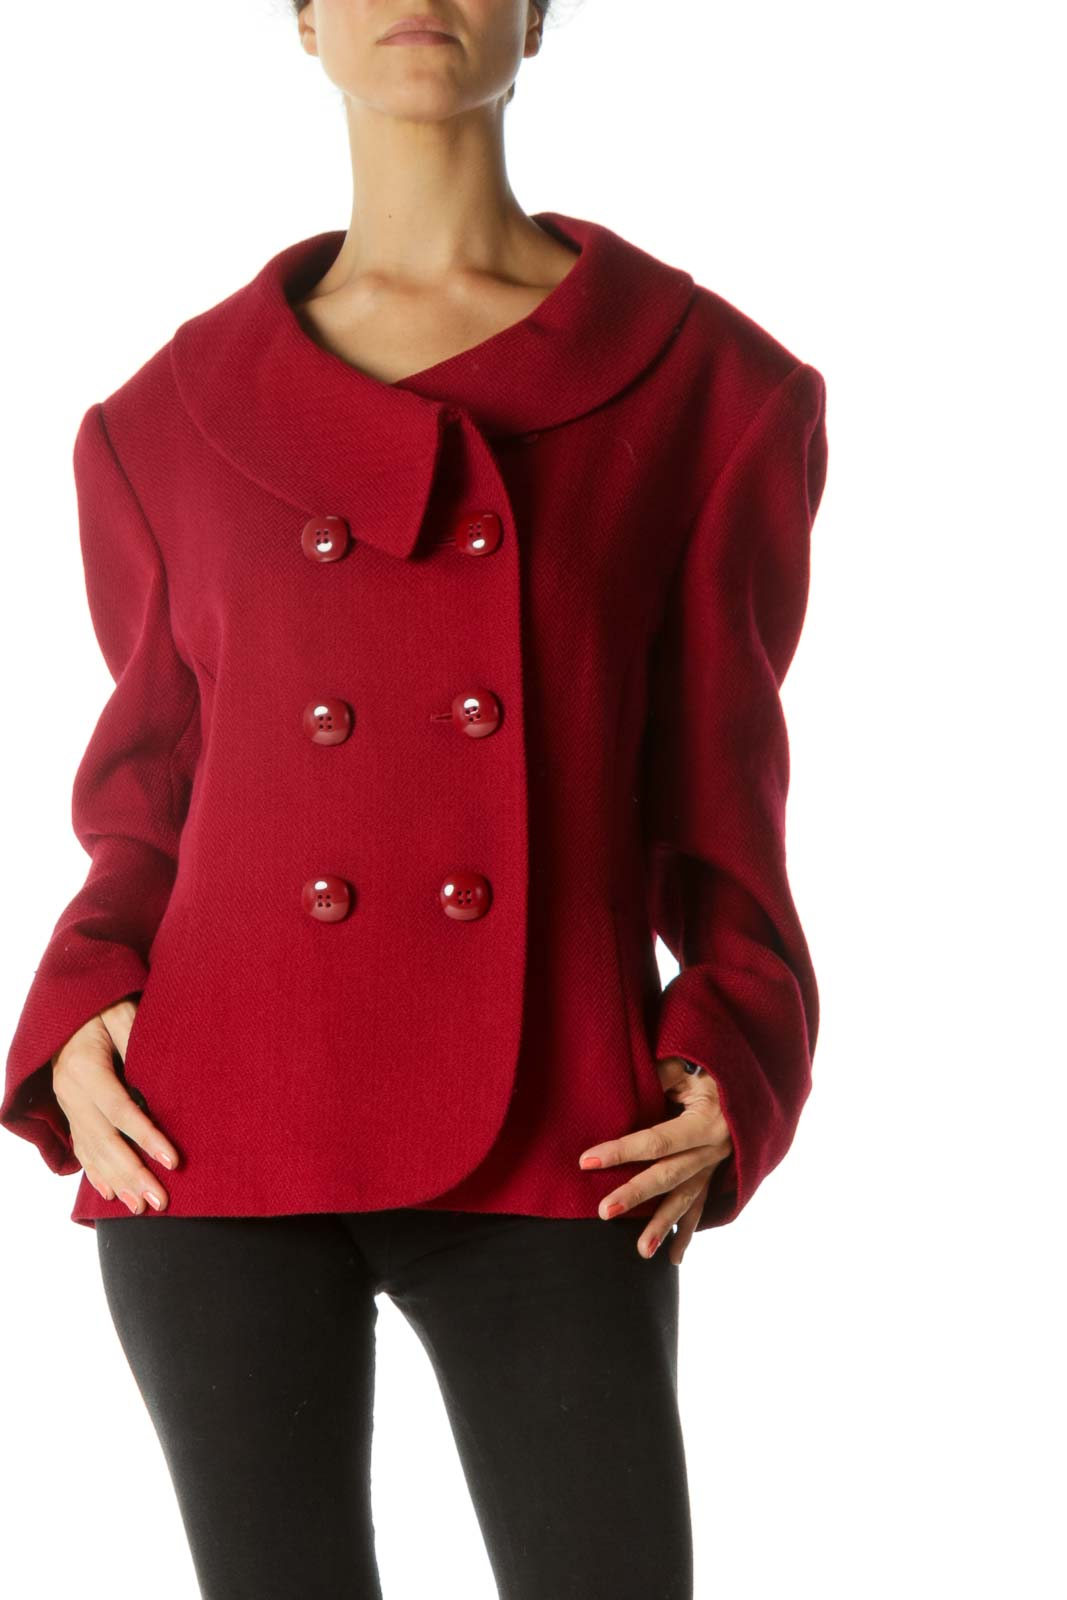 Dark Red Wool Blend Round-Collar Design Padded Shoulders Blazer